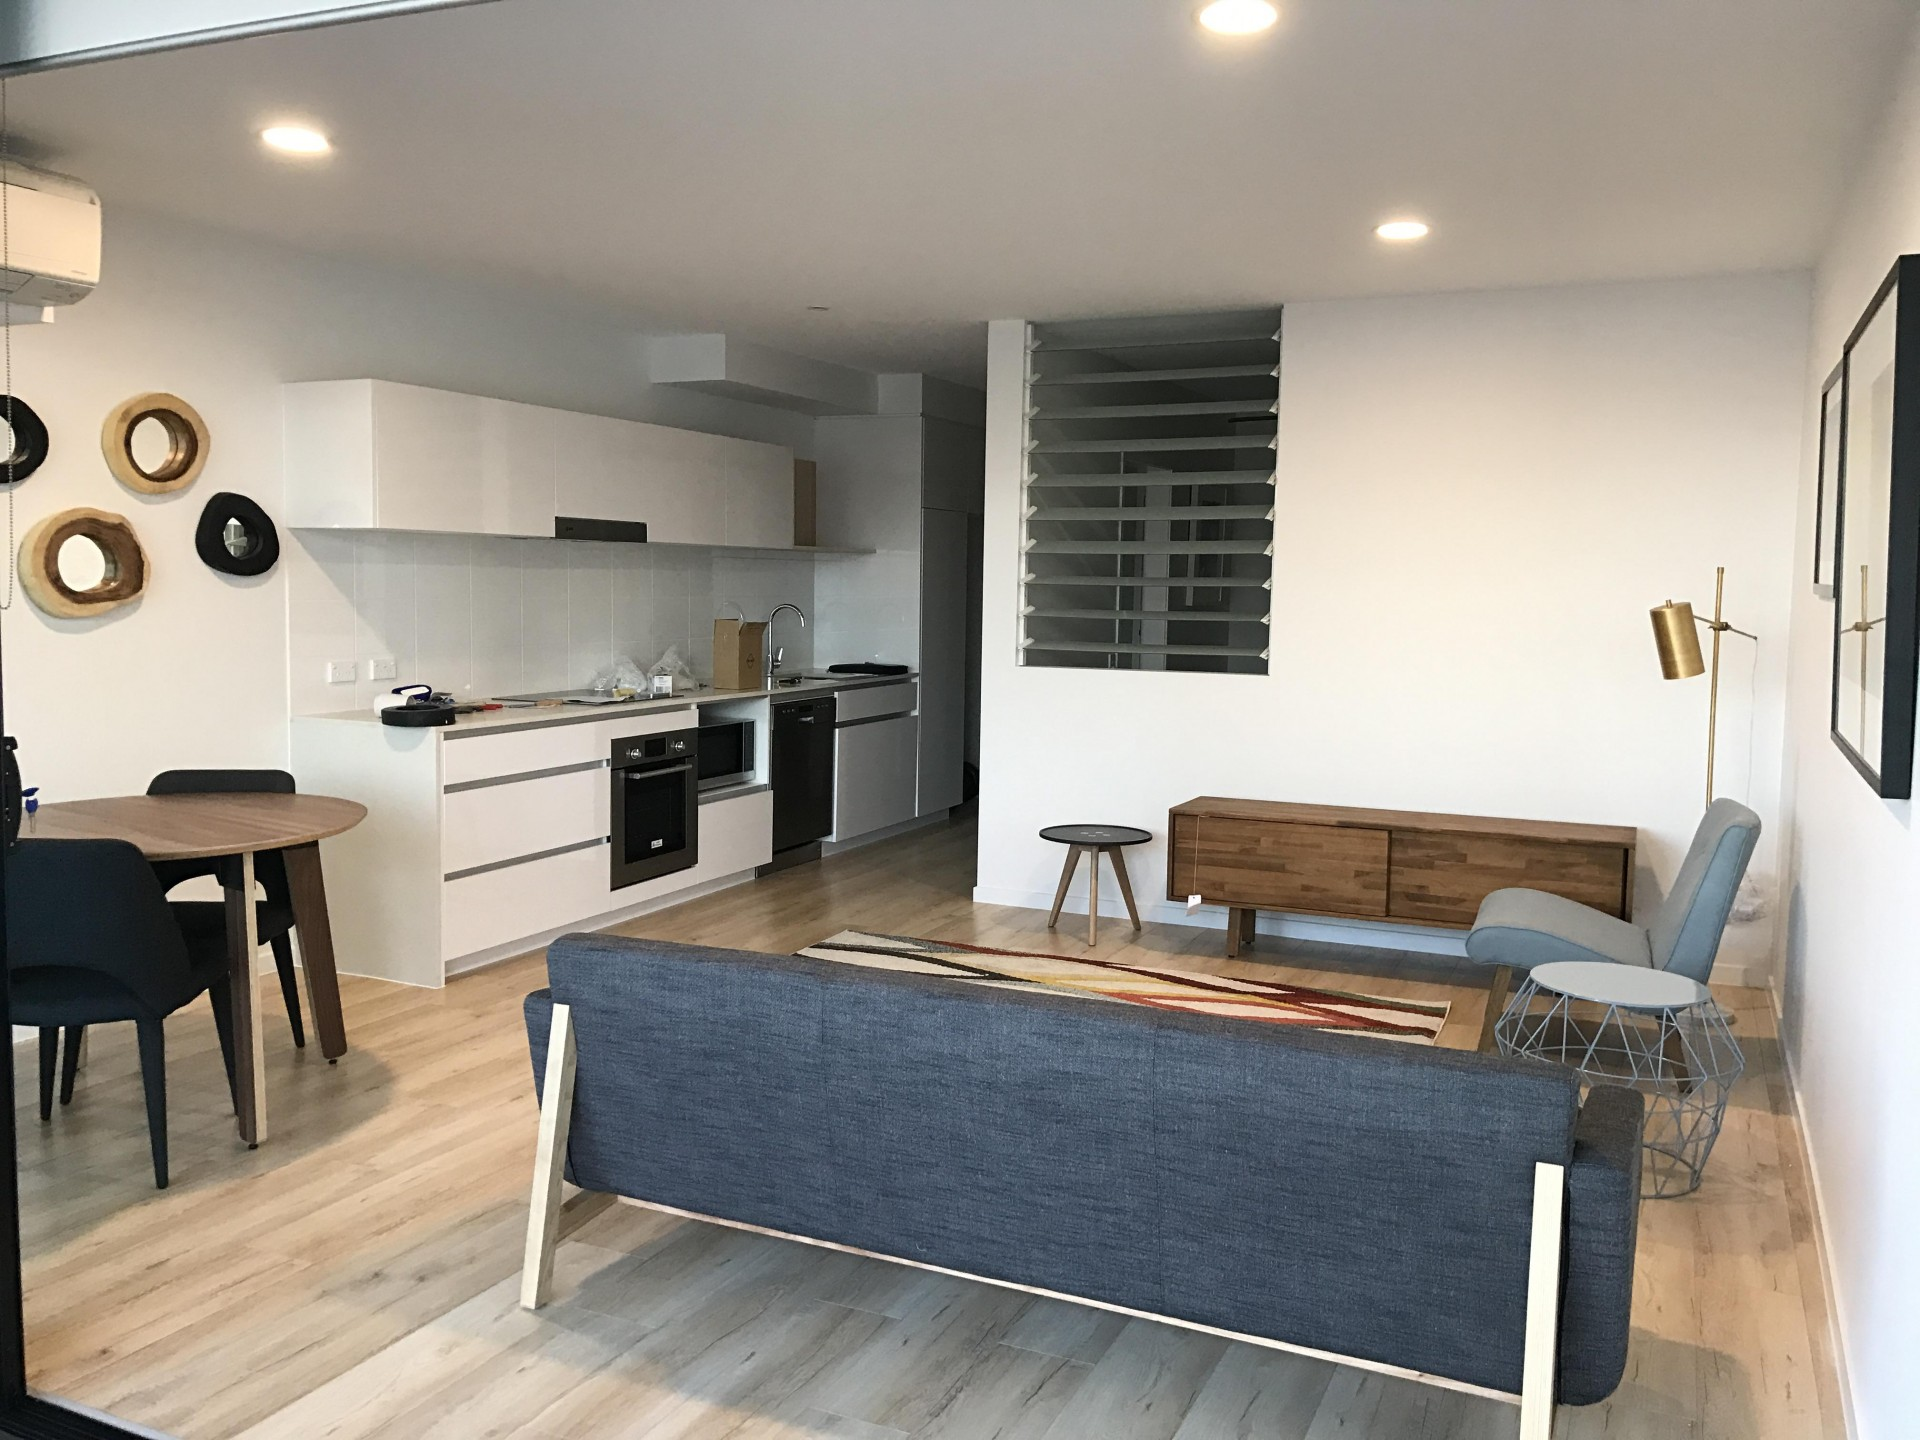 Lovely furnished unit in near new complex